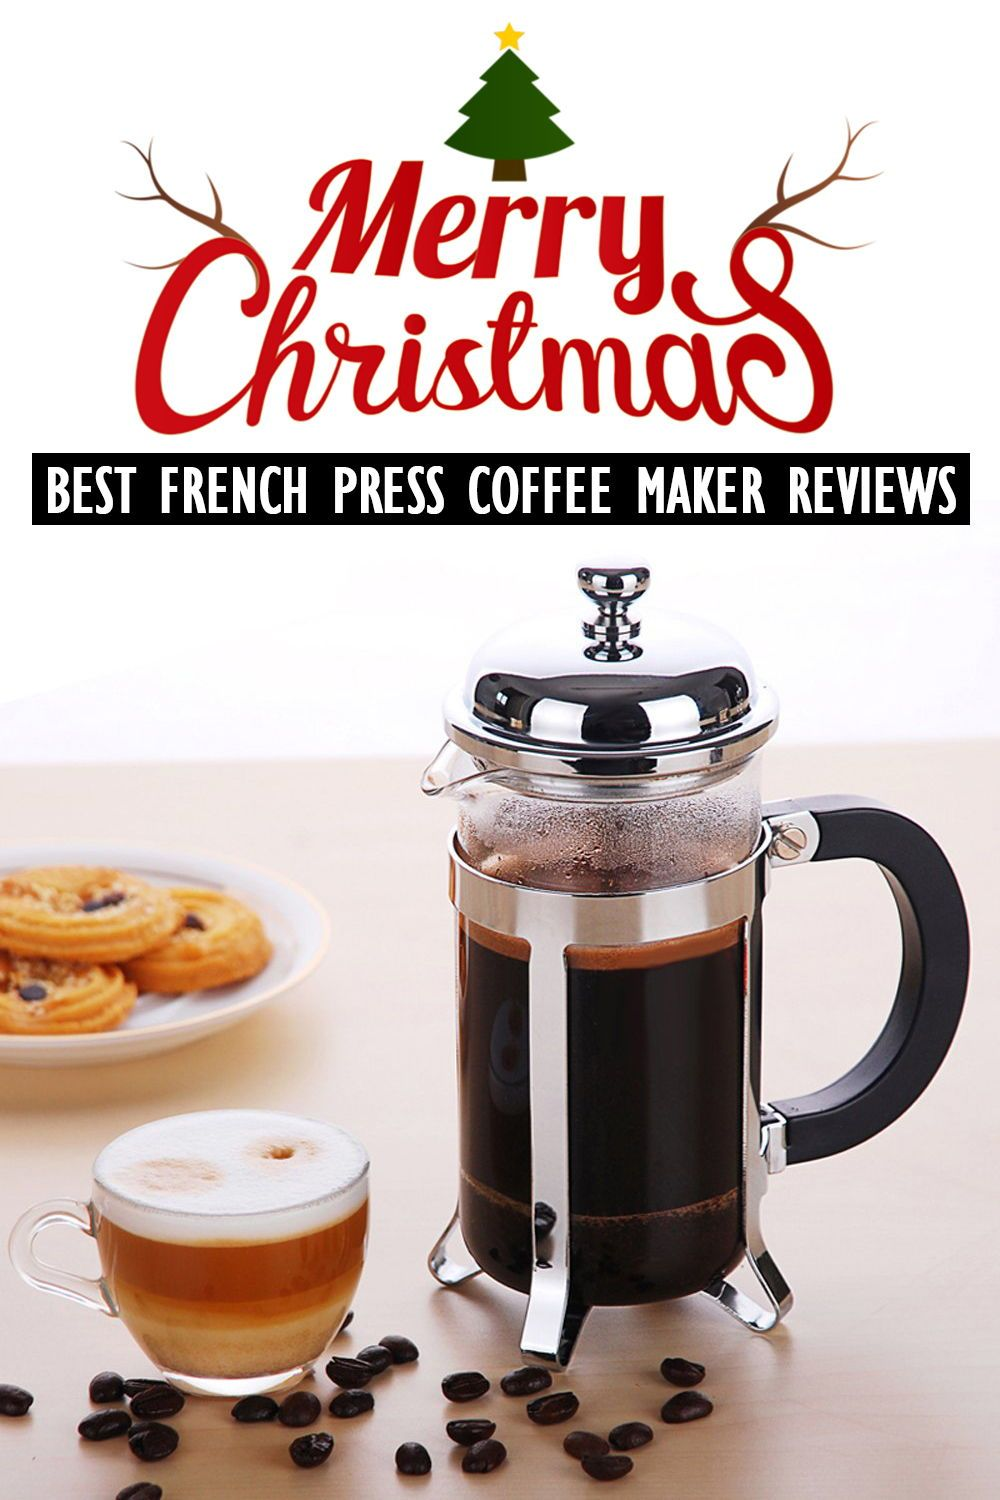 Top 10 French Press Coffee Makers June 2020 Reviews Buyers Guide French Press Coffee Maker French Press Coffee Coffee Maker Reviews